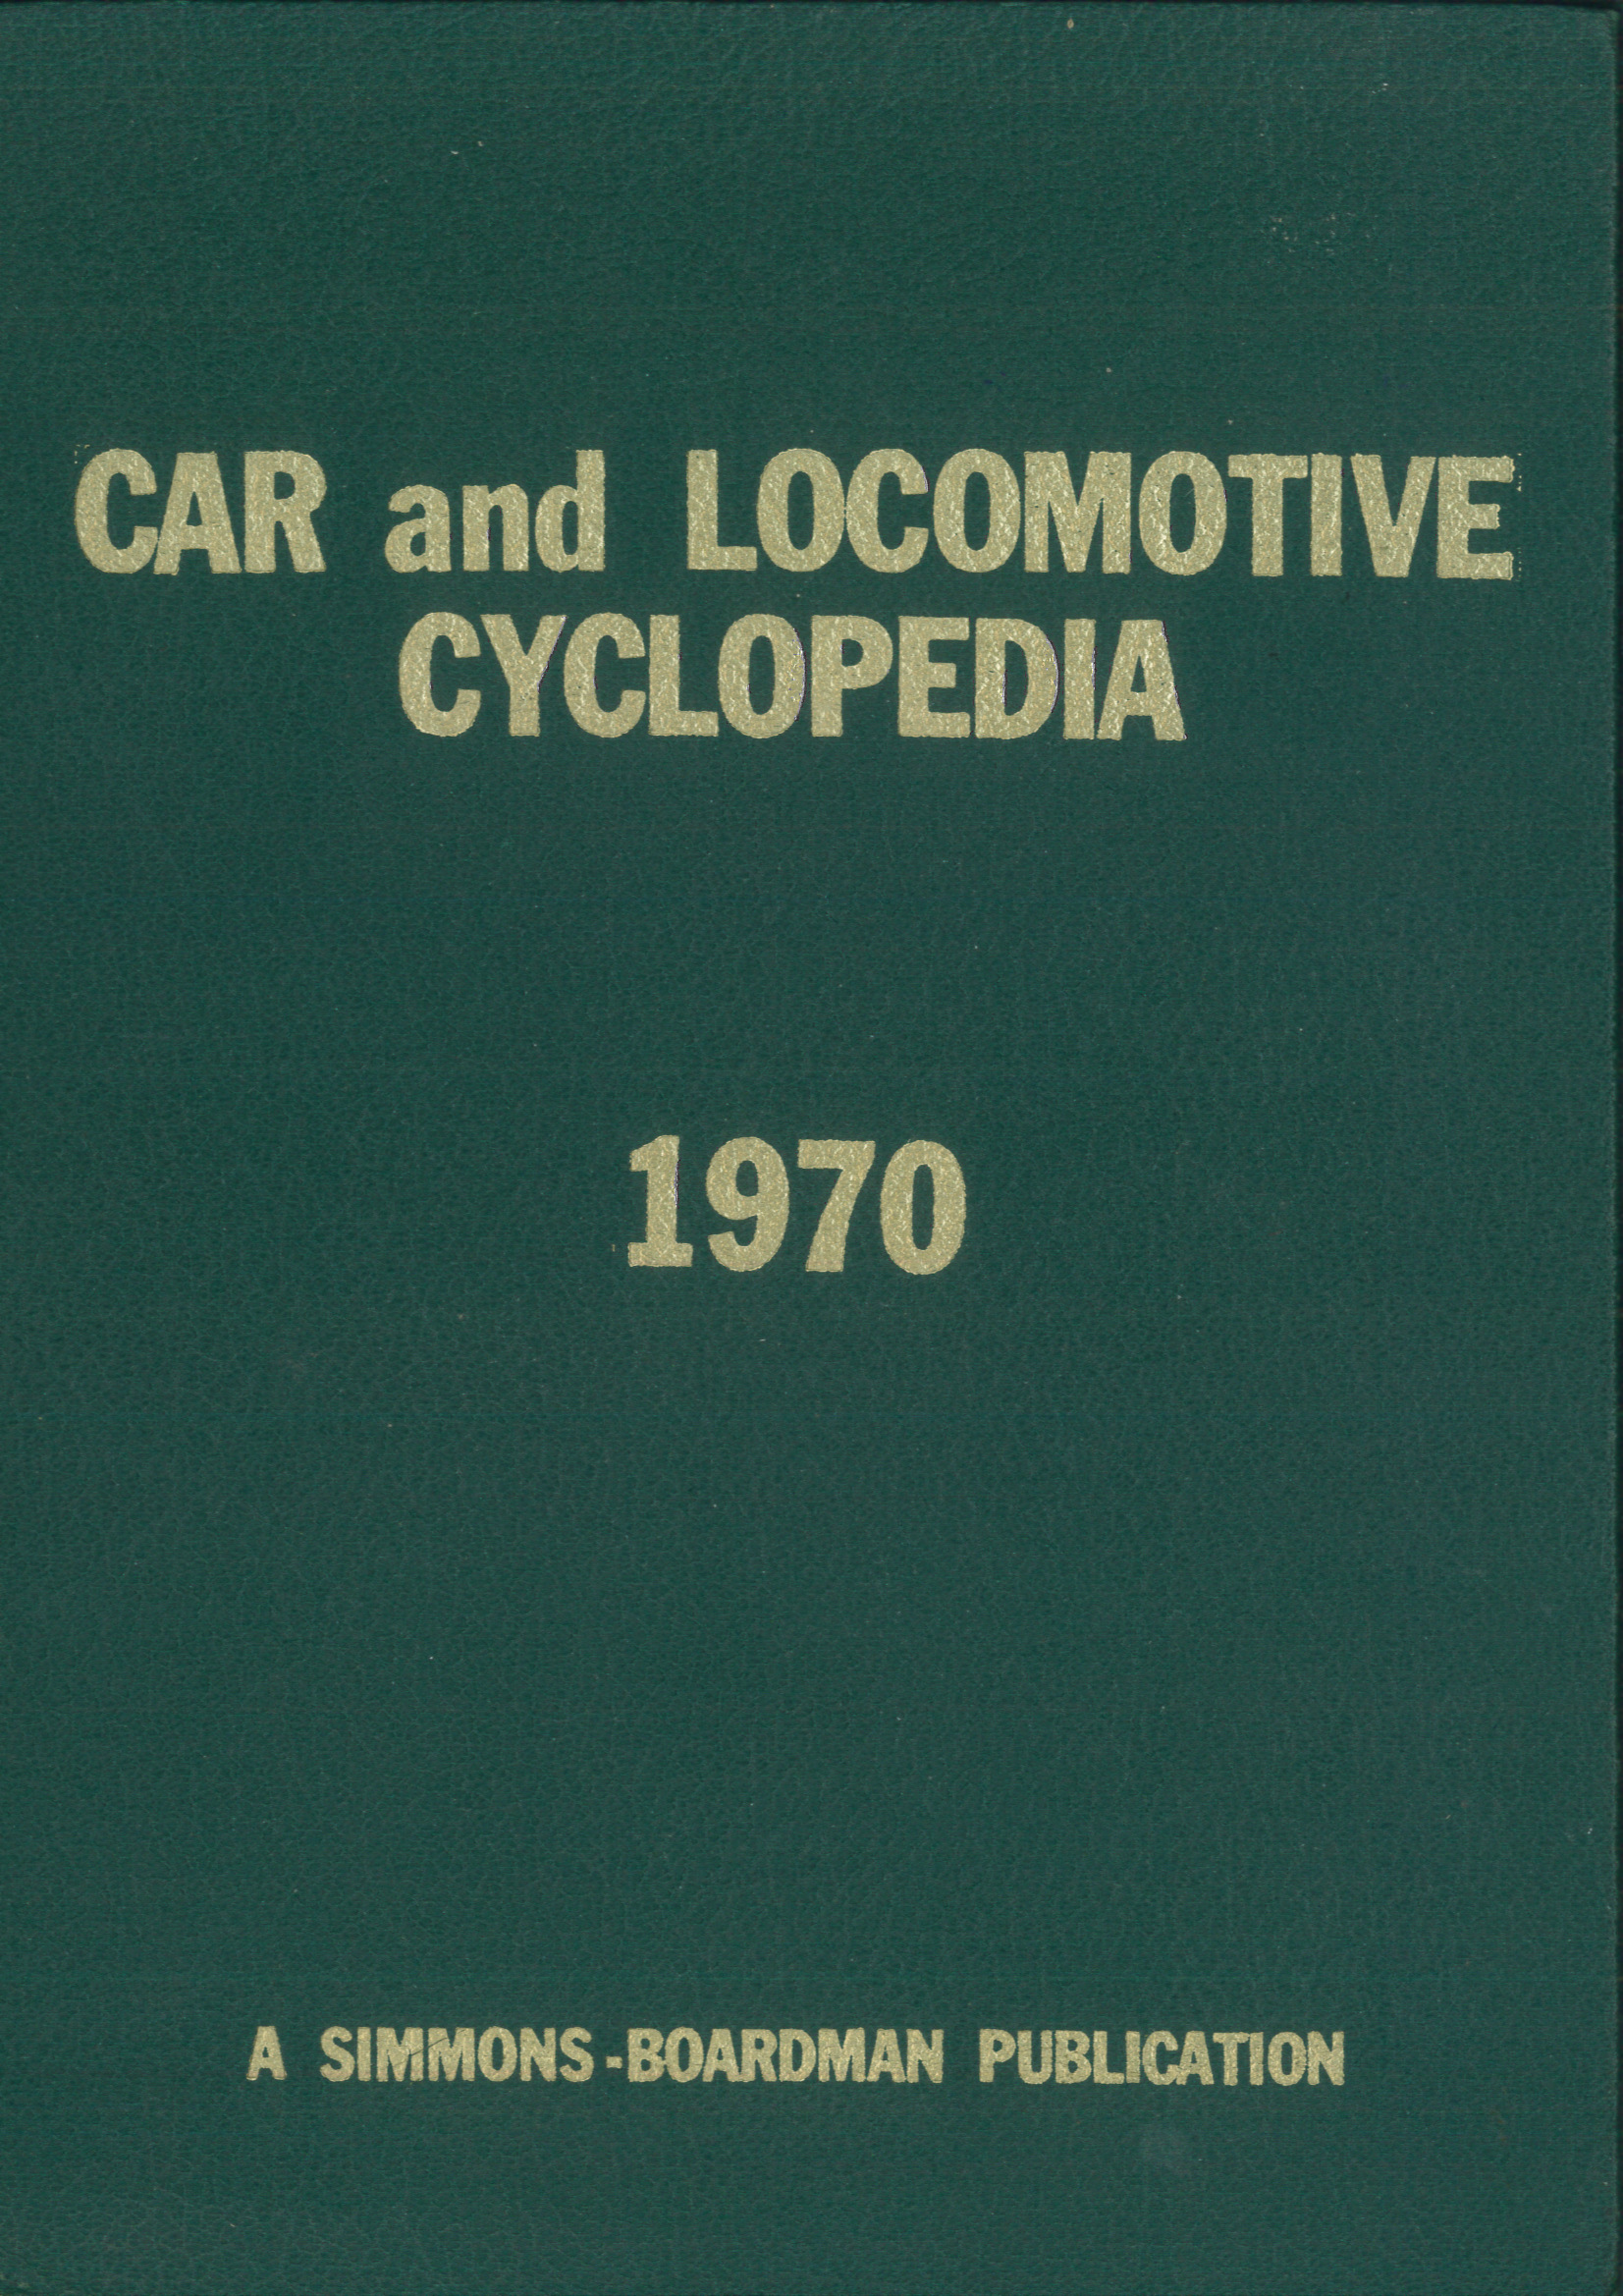 Car and Locomotive Cyclopedia 1970   | günstig bestellen bei Modelleisenbahn Center  MCS Vertriebs GmbH